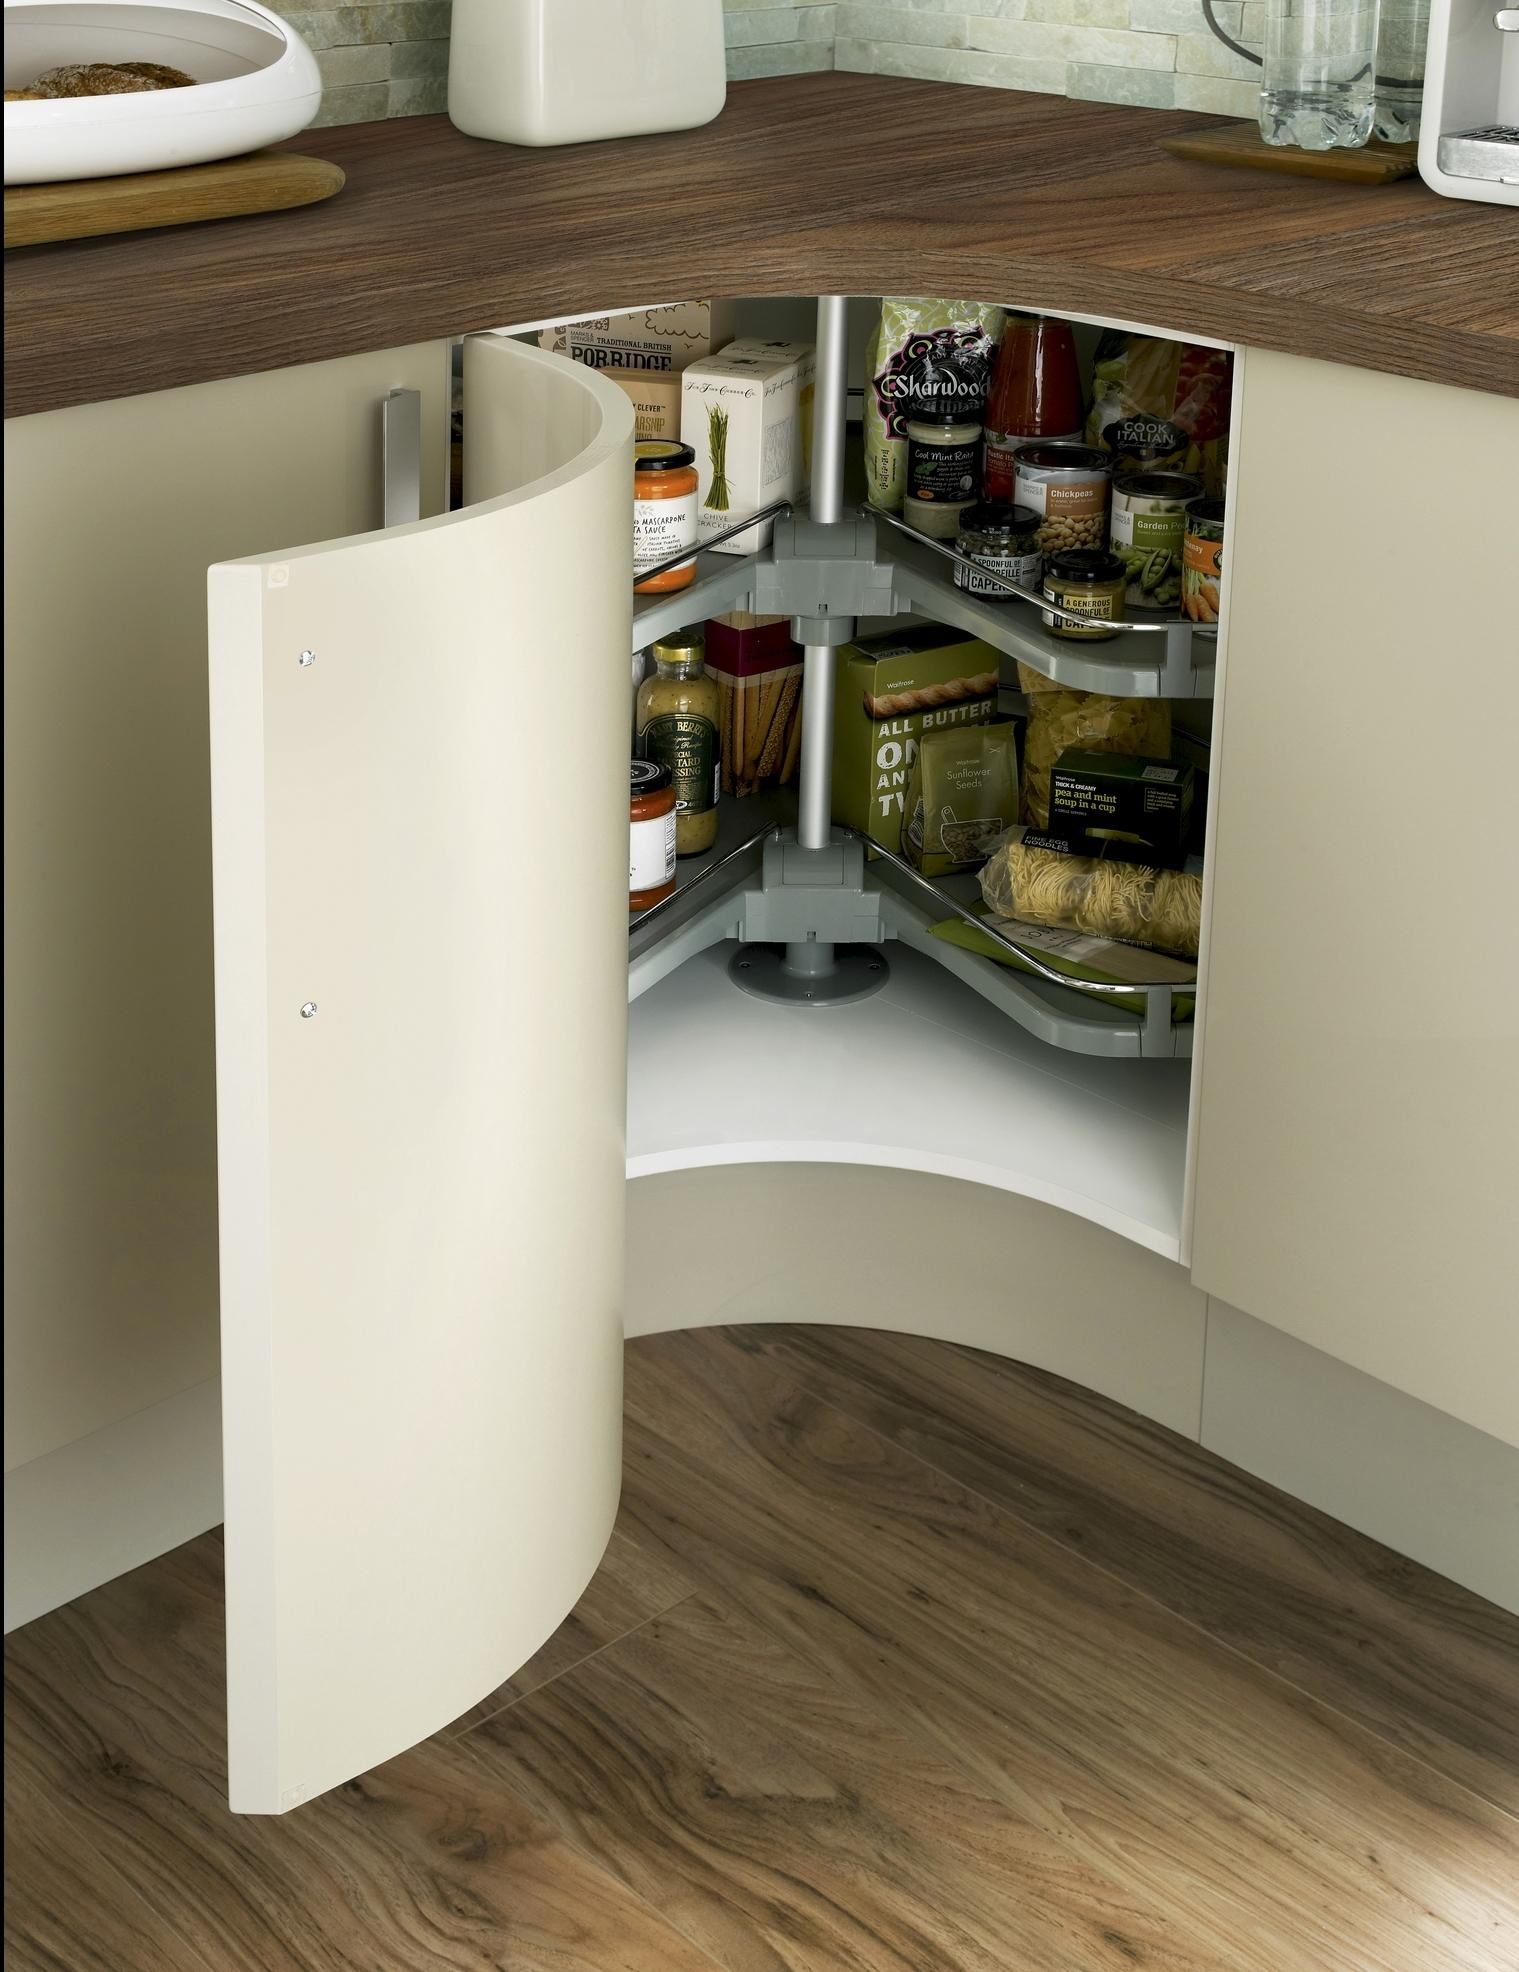 Best Kitchen Gallery: Concave Curved Base Unit With Premium Corner Carousel New Kitchen of Curved Kitchen Cabinets on rachelxblog.com